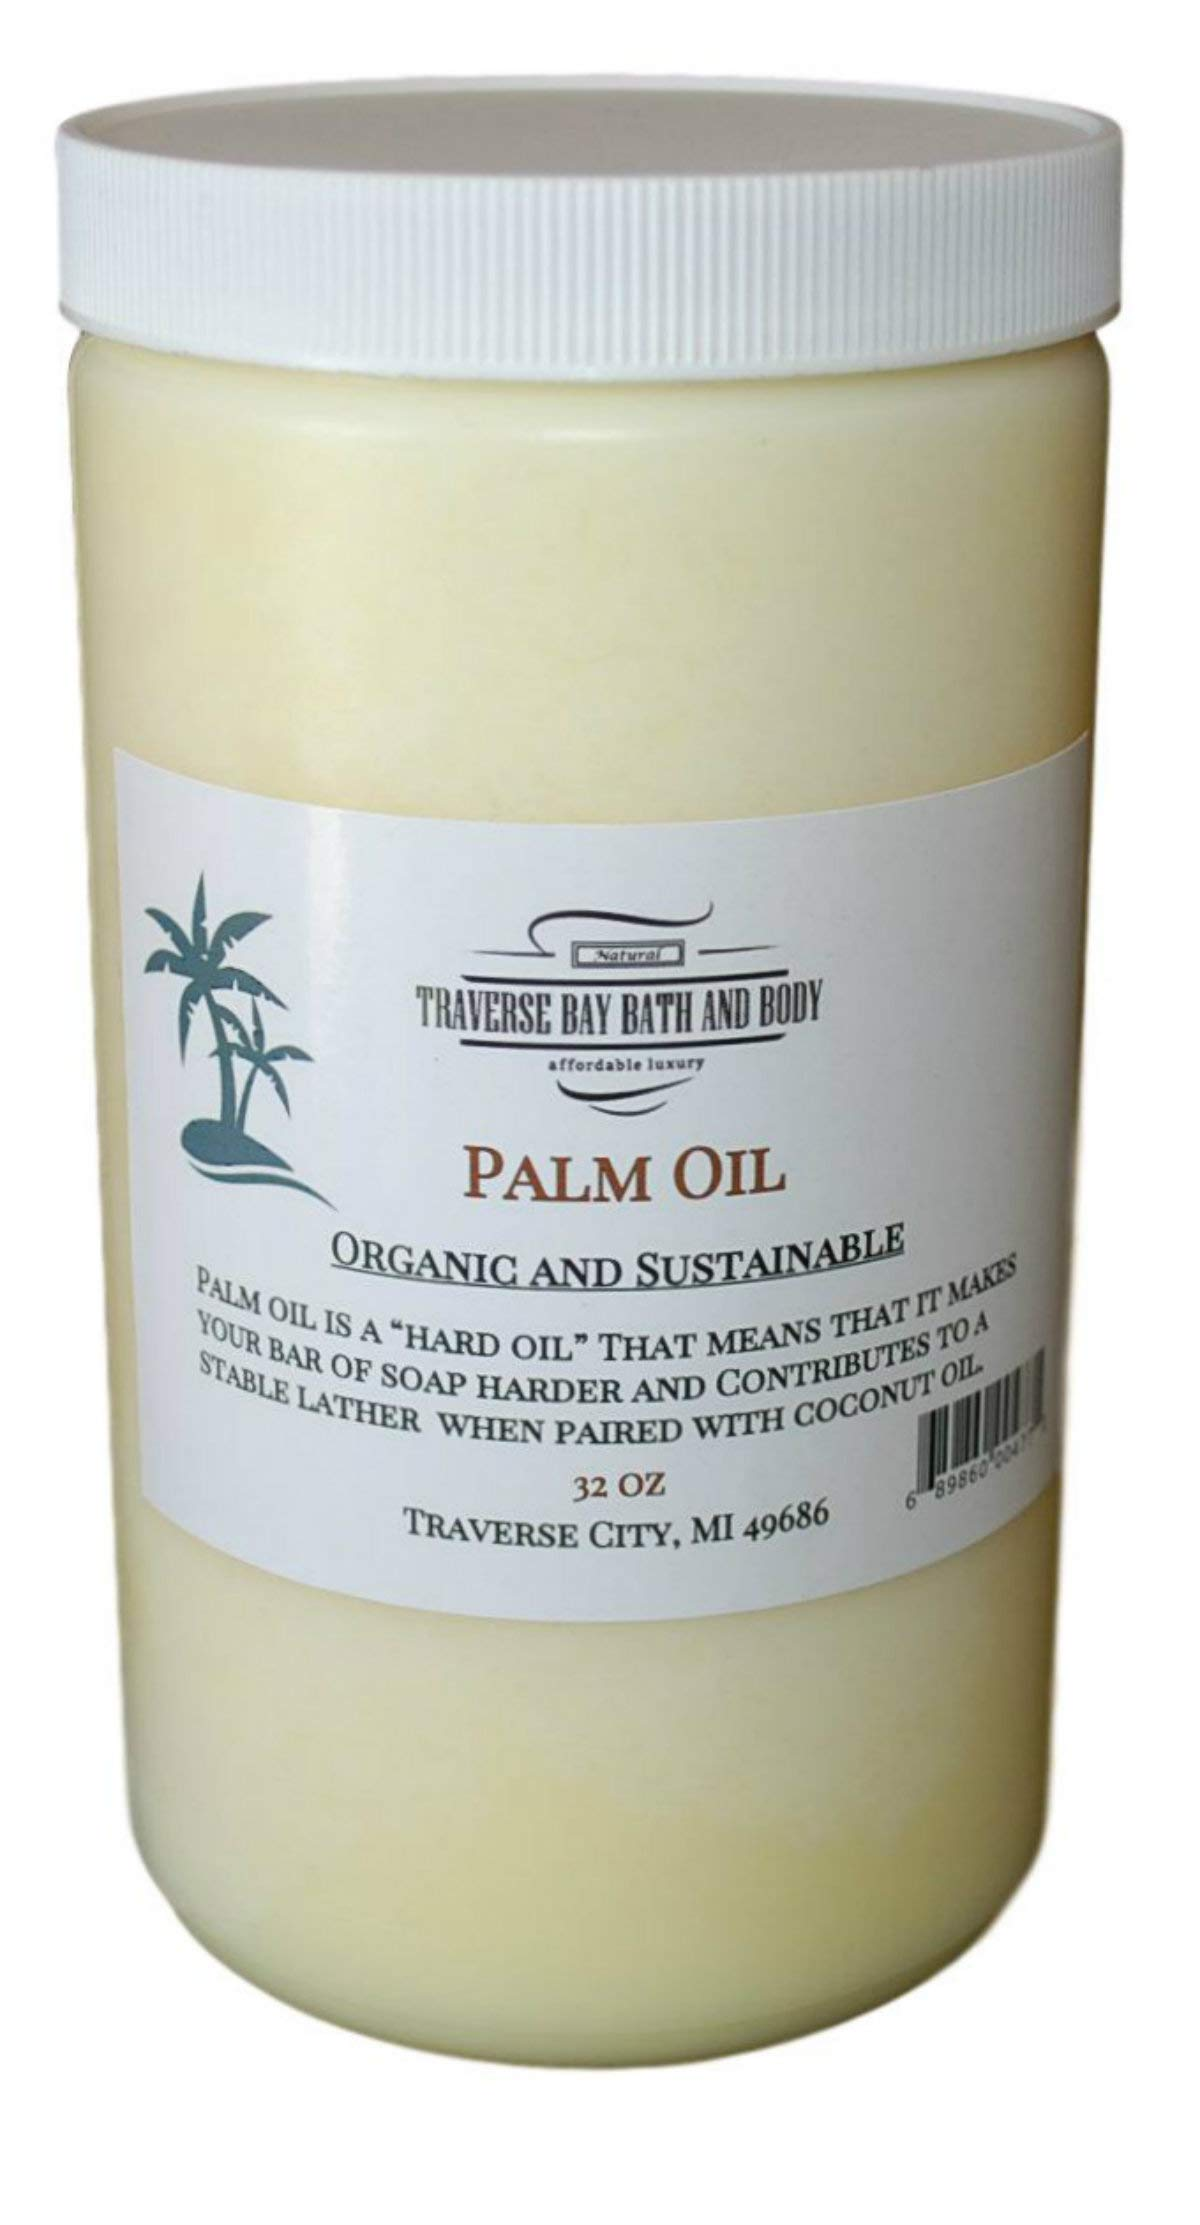 Palm Oil, Soap Making Supplies. Organic, Sustainable 32 fl oz. DIY Projects.